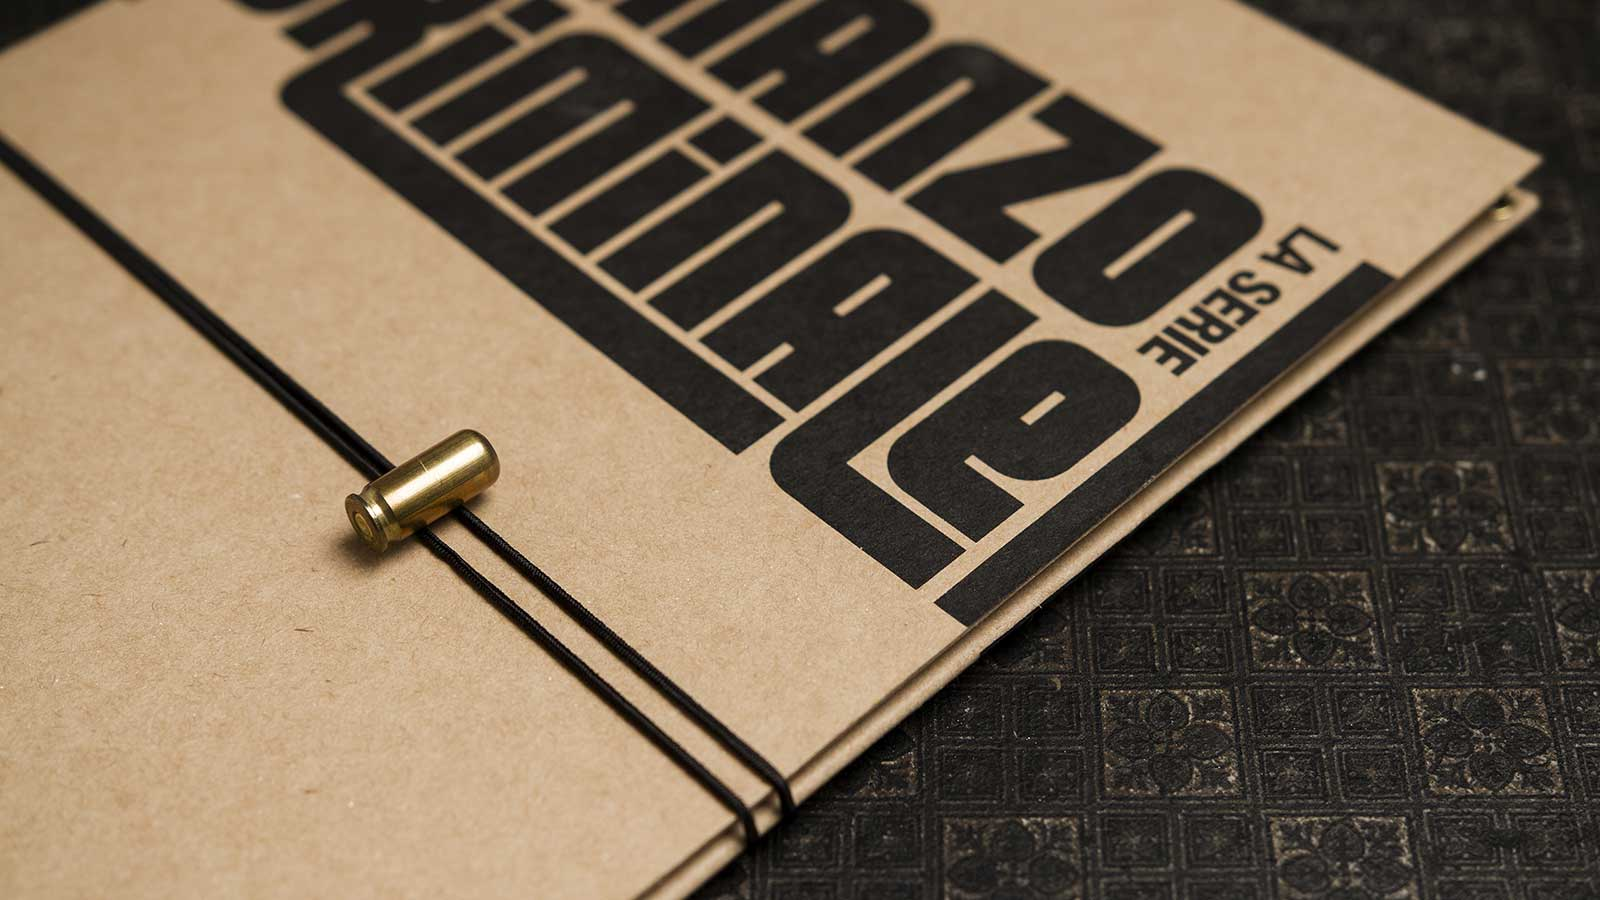 A X N, Romanzo Criminale press kit, detail of the closure